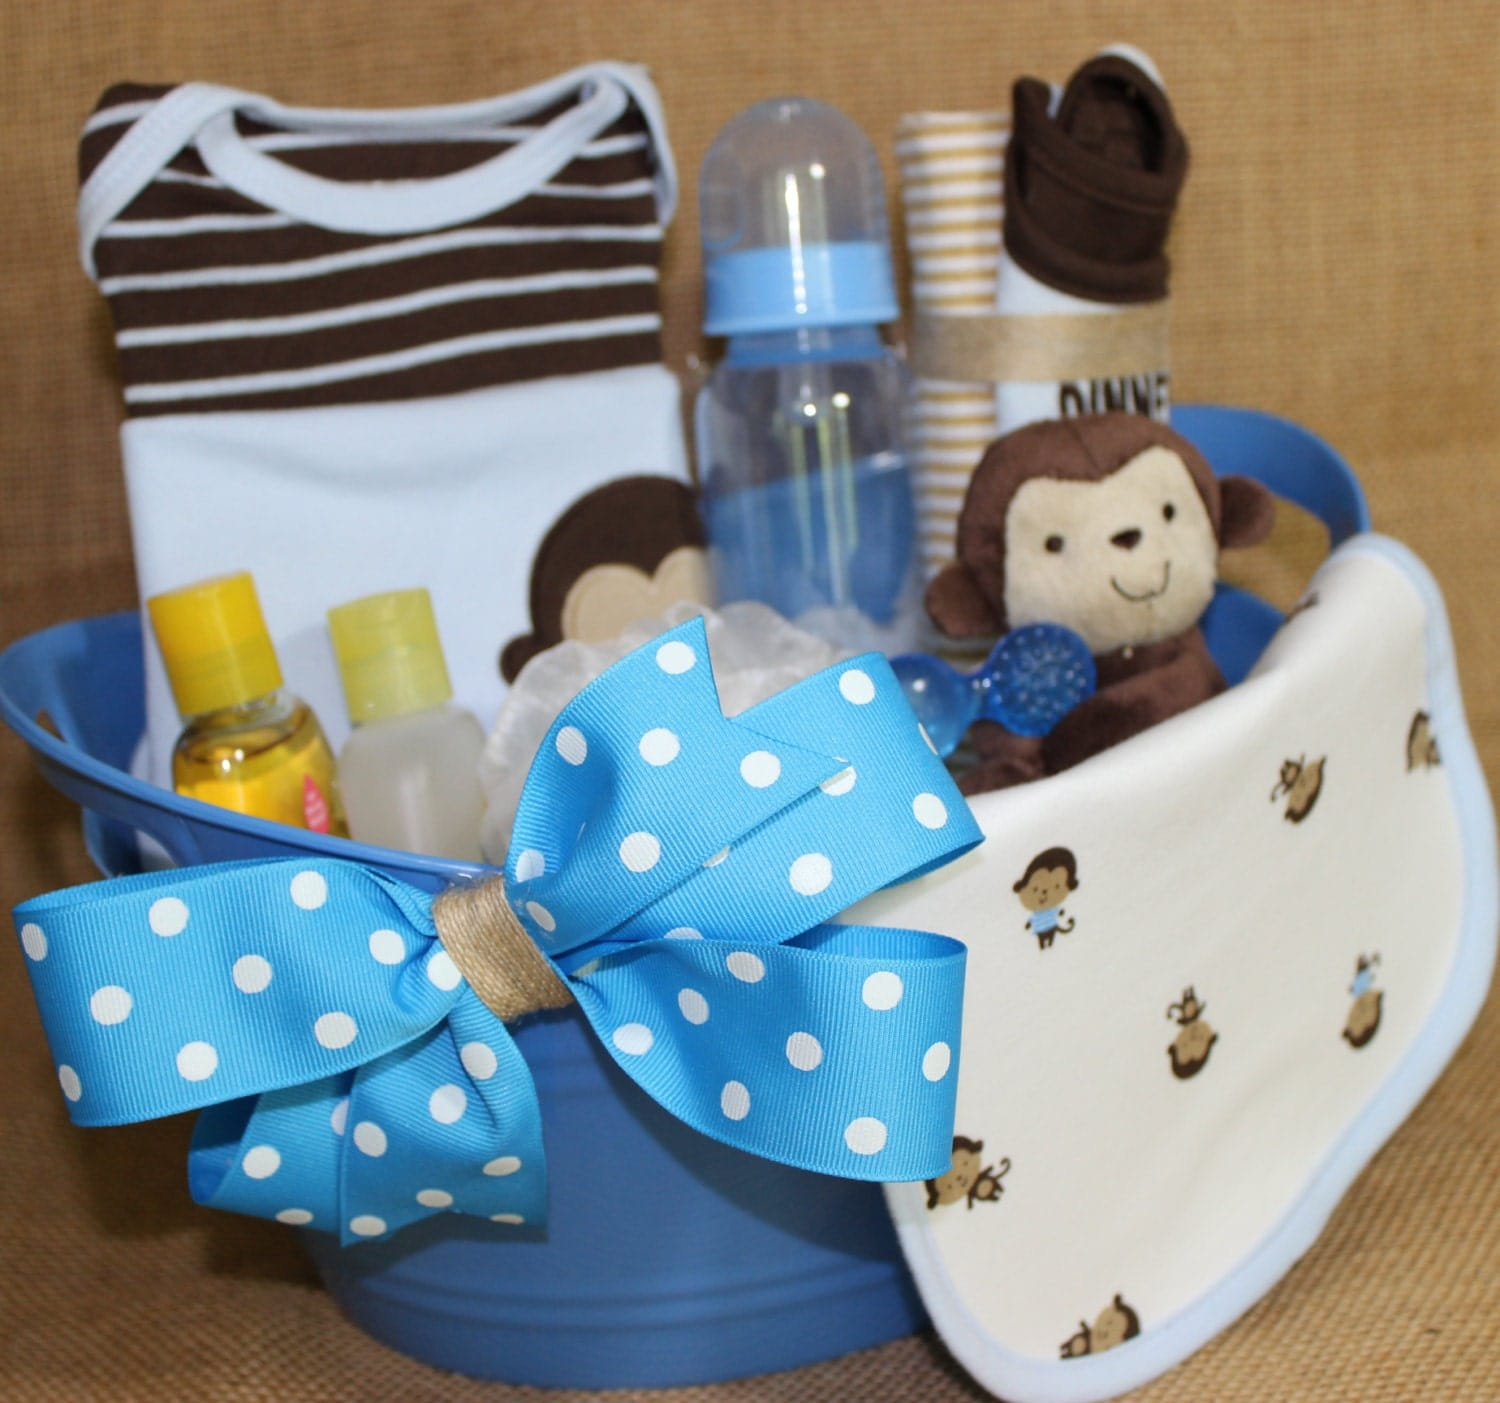 Baby Gift Basket Etsy : Adorable monkey themed baby boy gift basket filled with cute